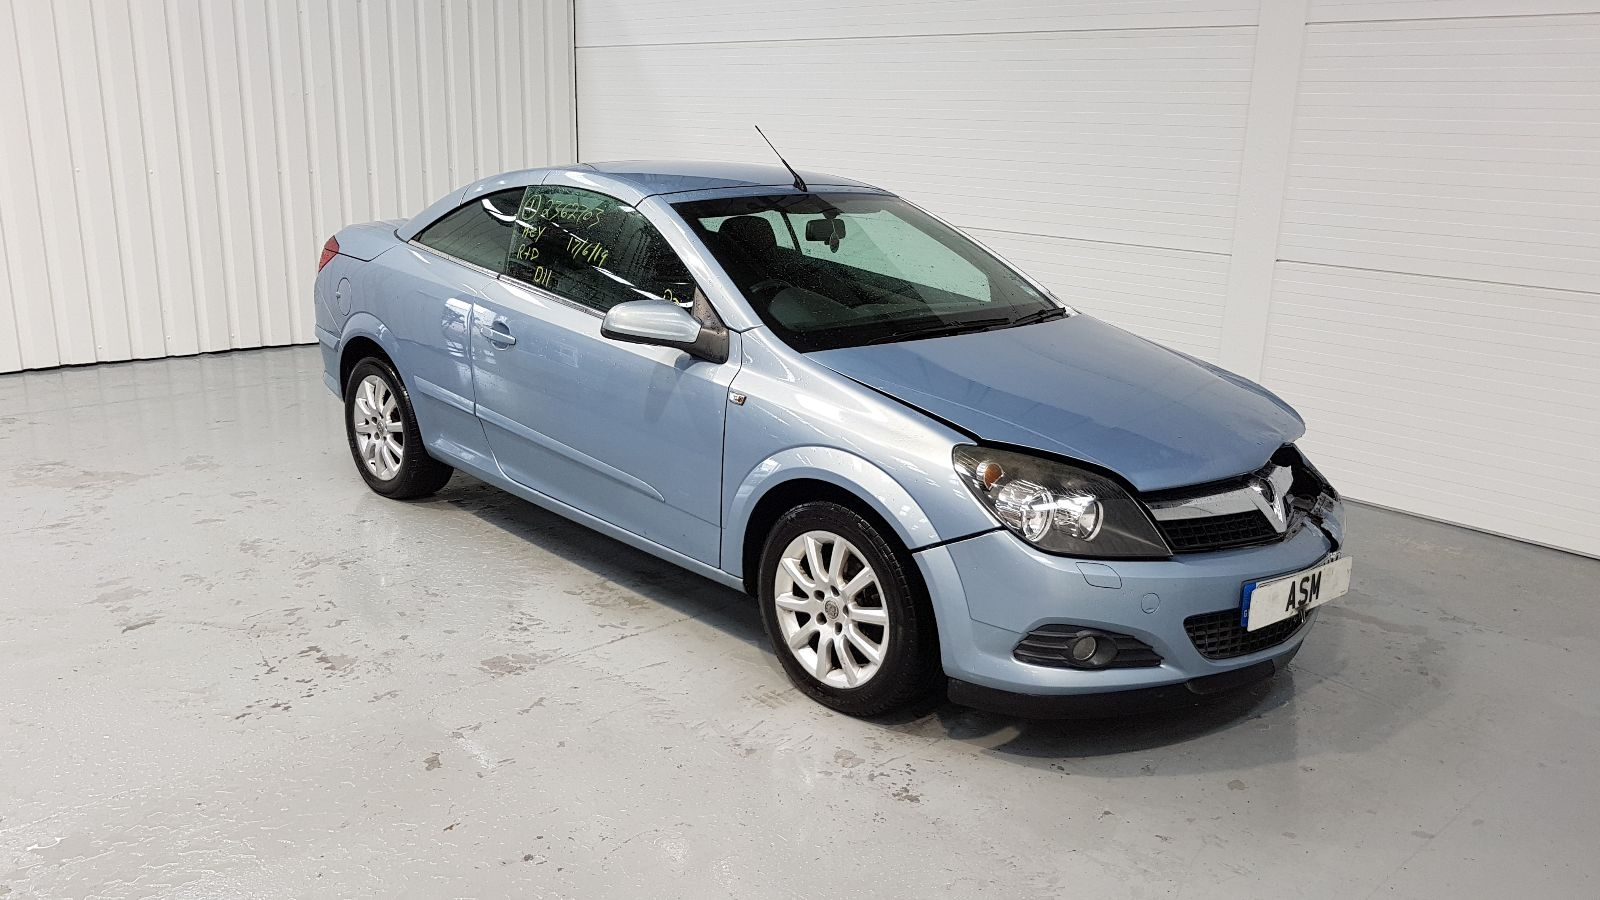 Image for a 2007 Vauxhall Astra 1.8 Petrol Z18XER(2H0) Engine